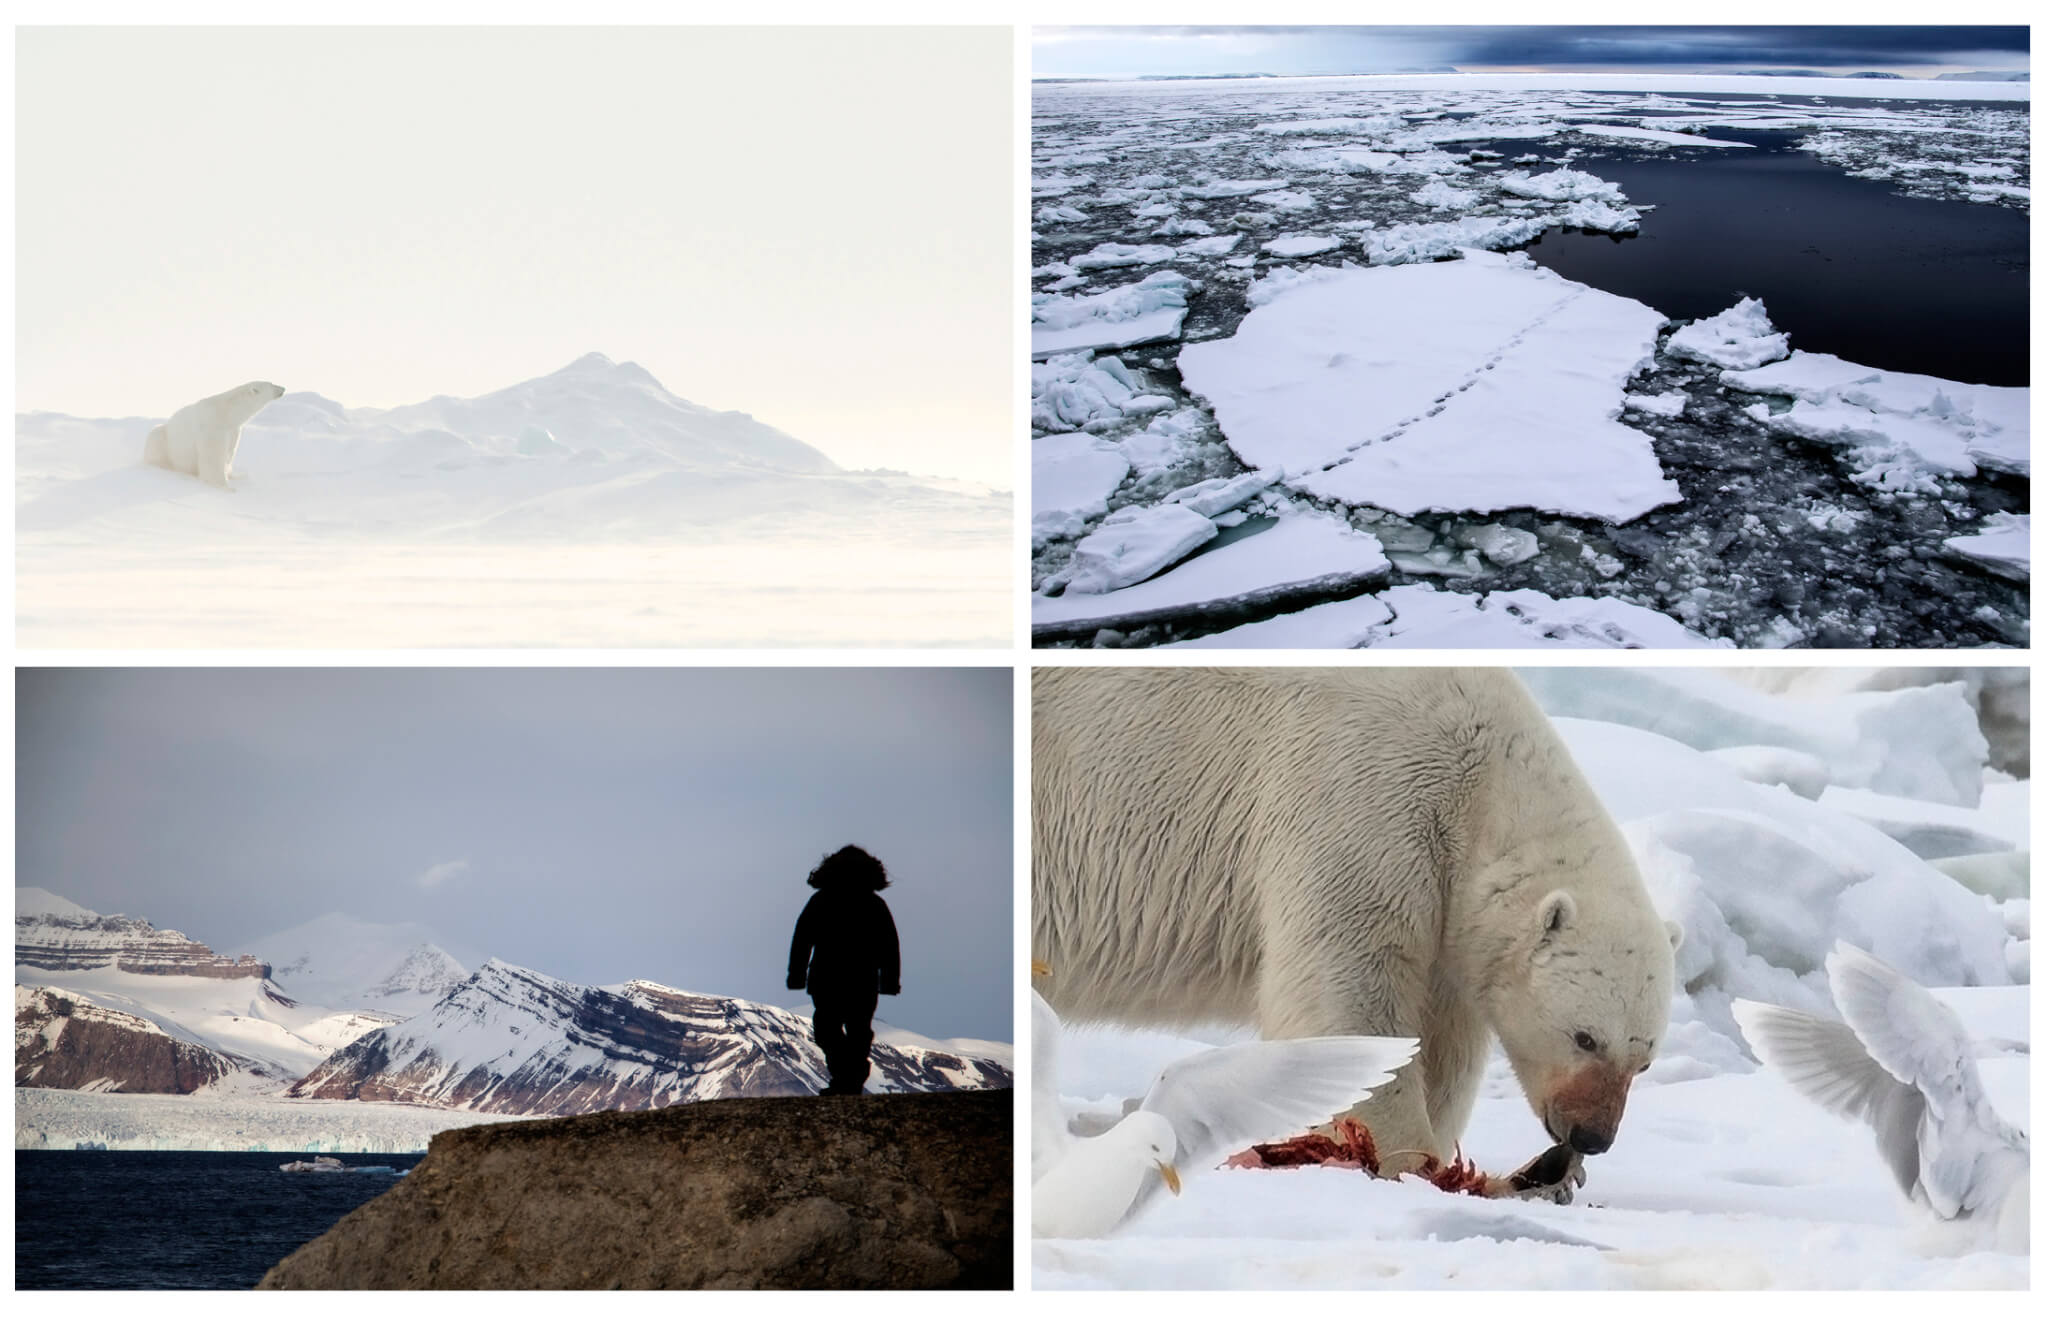 Pictures from Svalbard, ice and polar bears